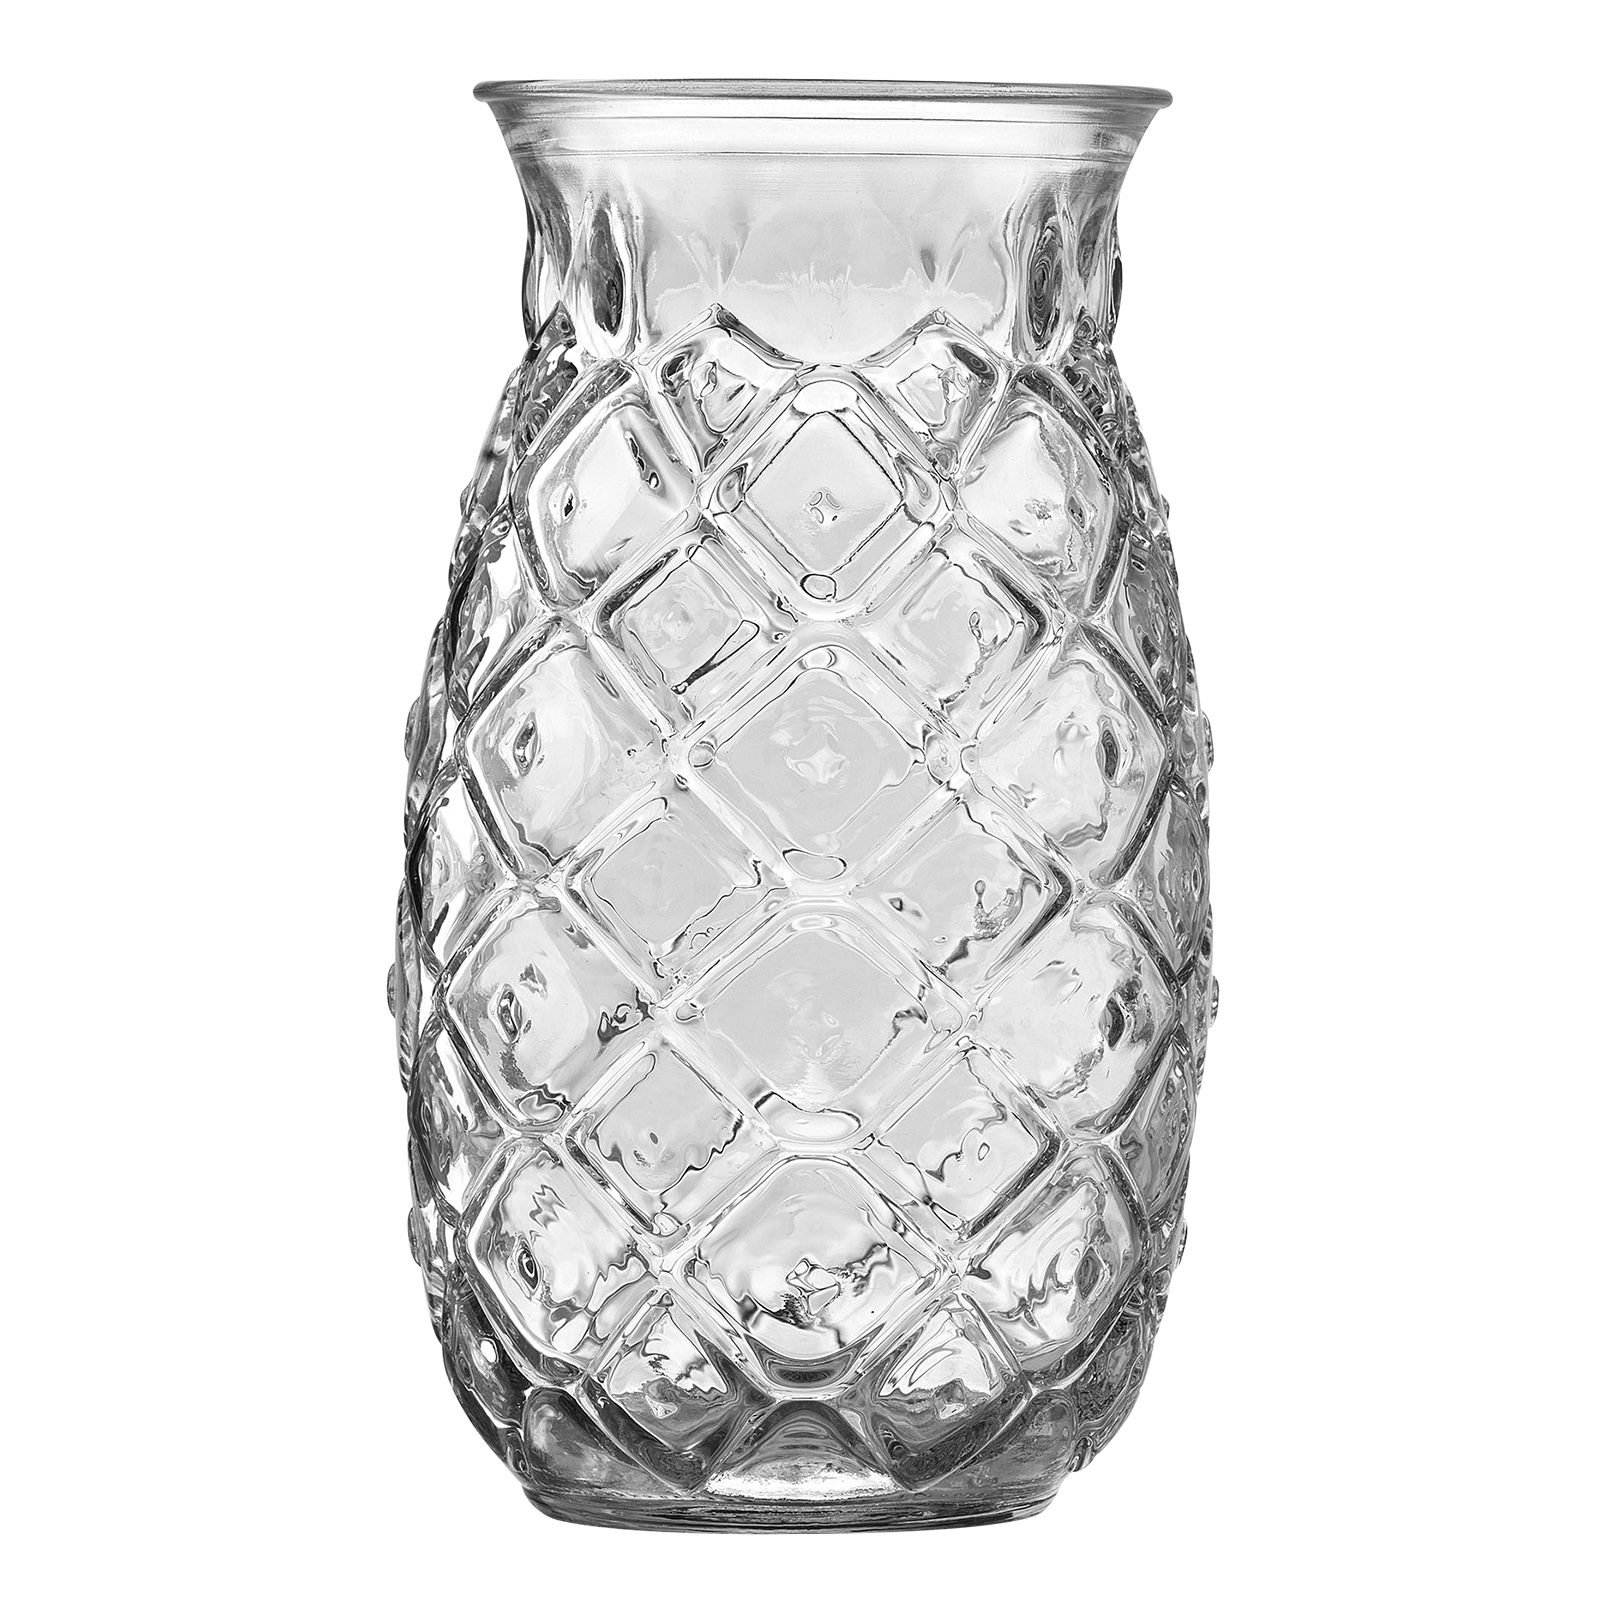 Libbey Glass 56880 glass, cocktail / martini